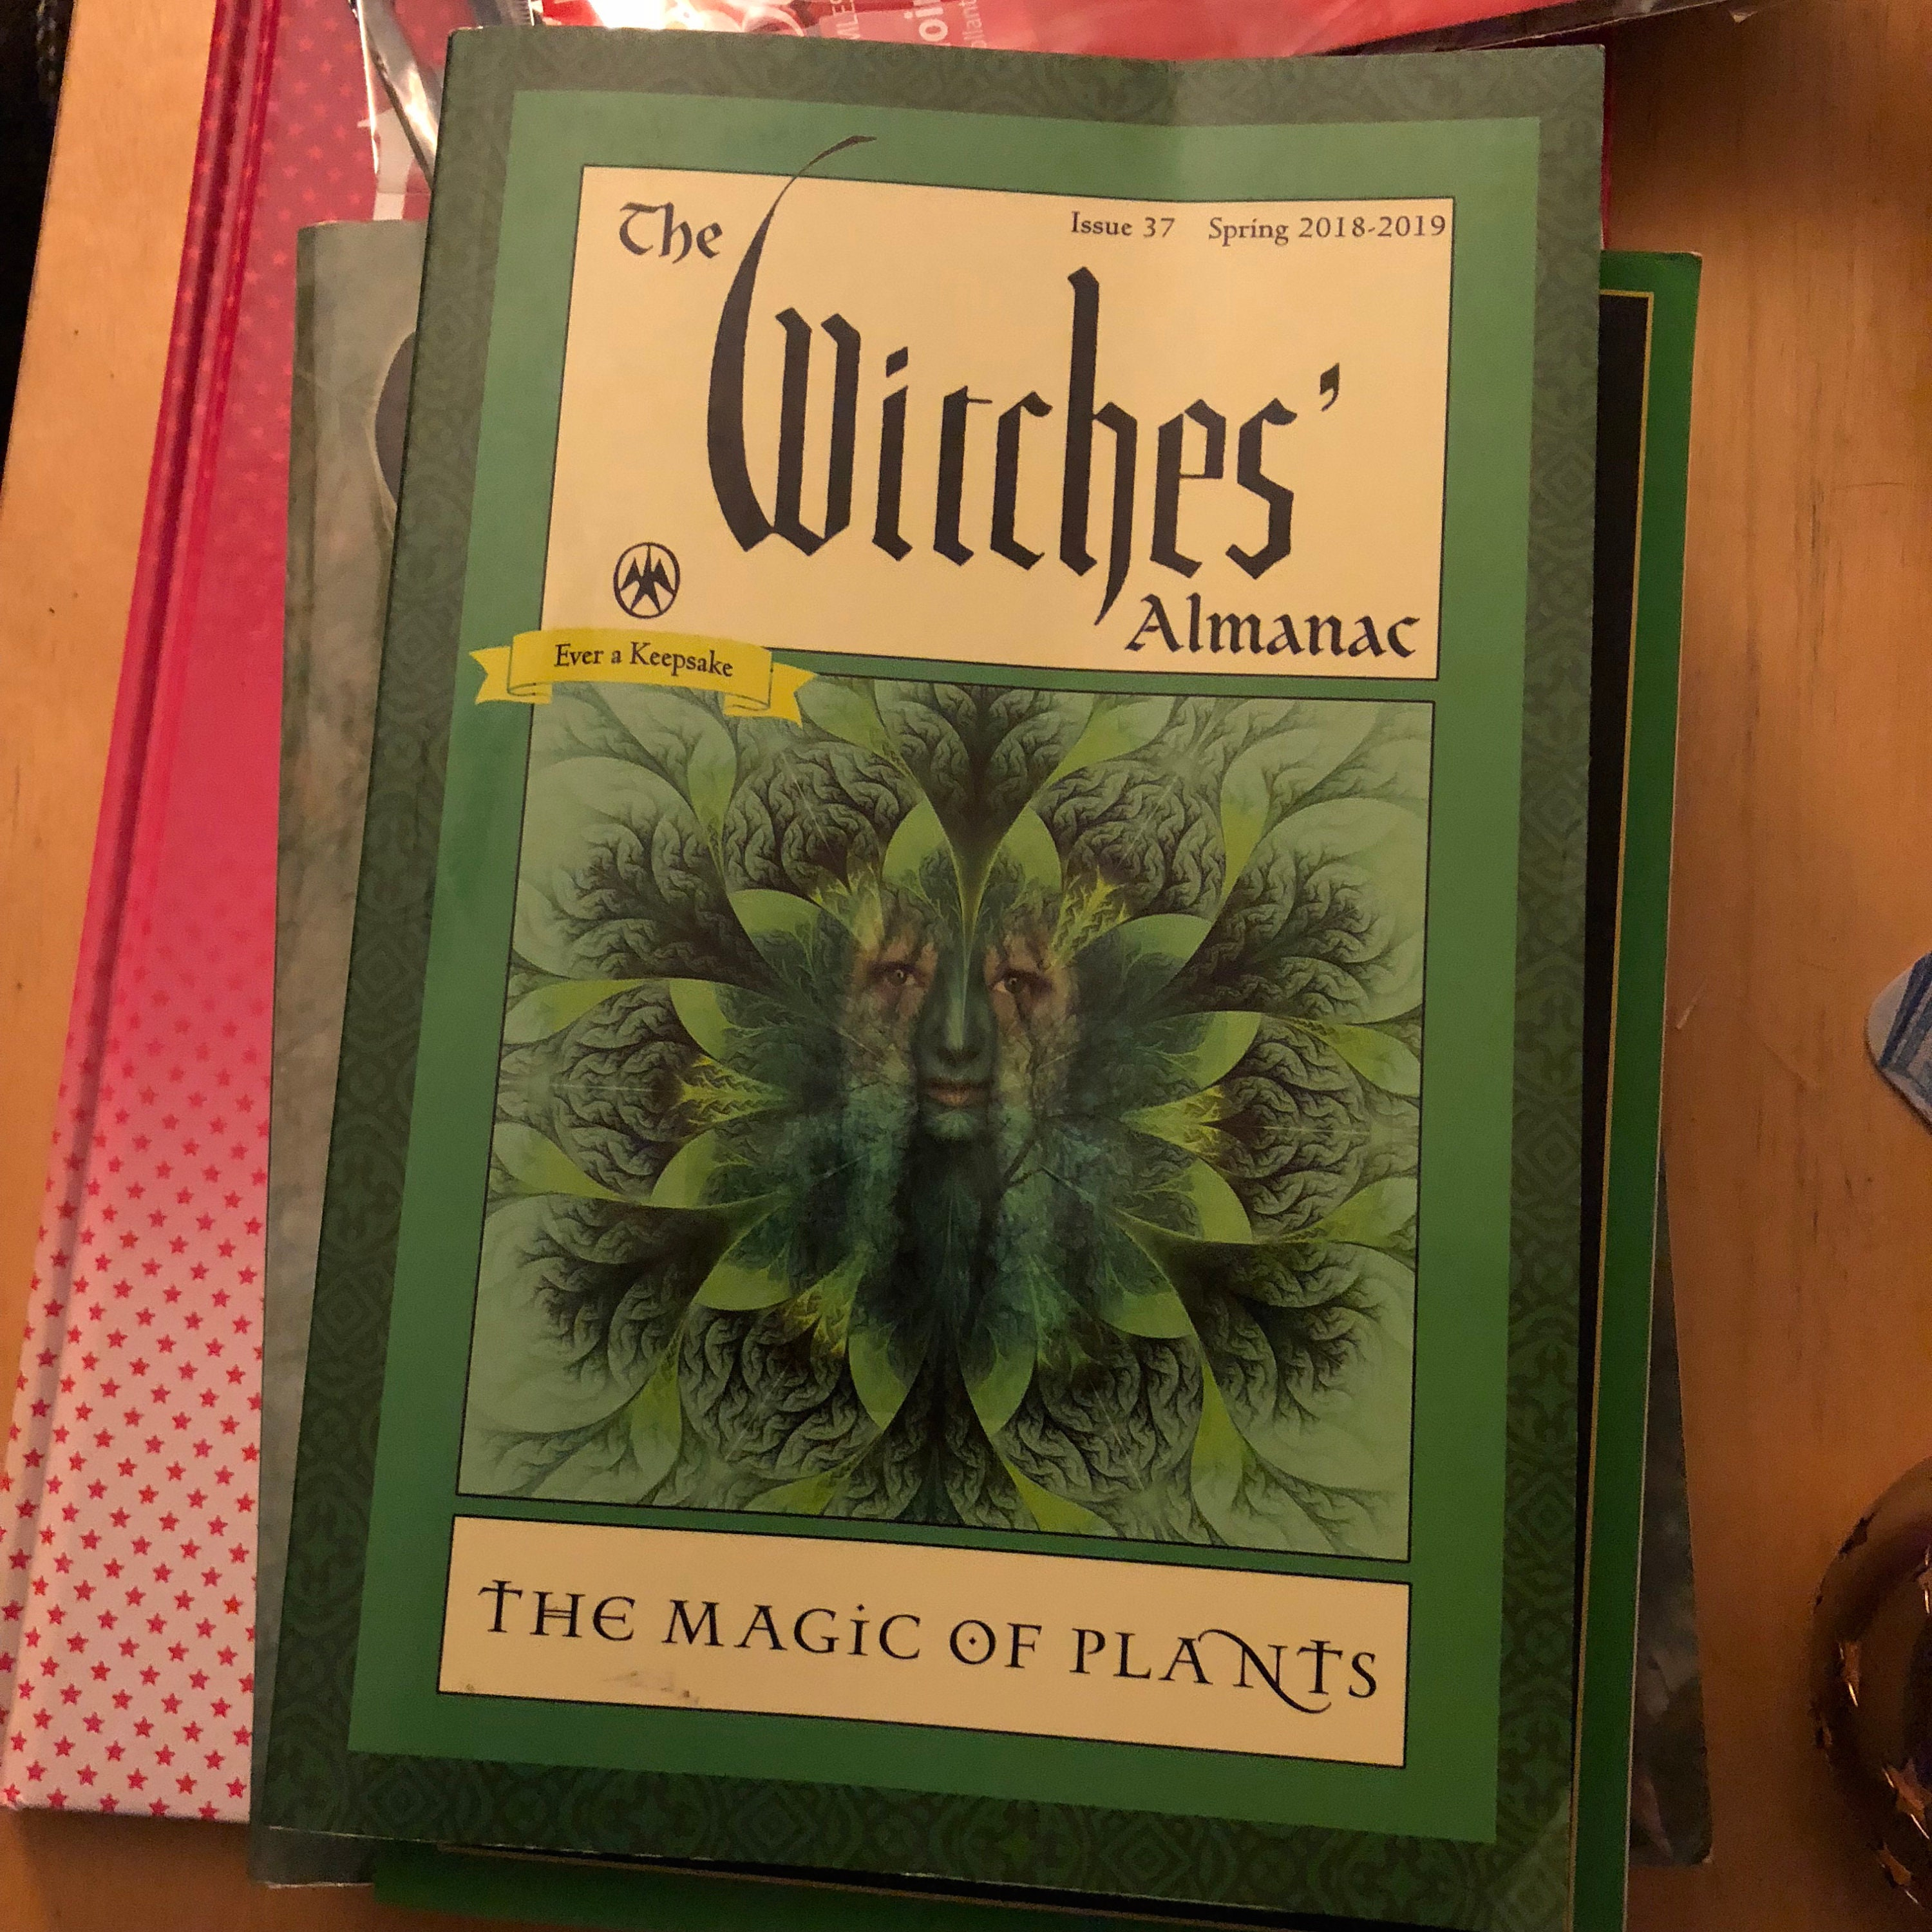 Witches Almanac Issue 37 Spring 2018-2019 The Magic of